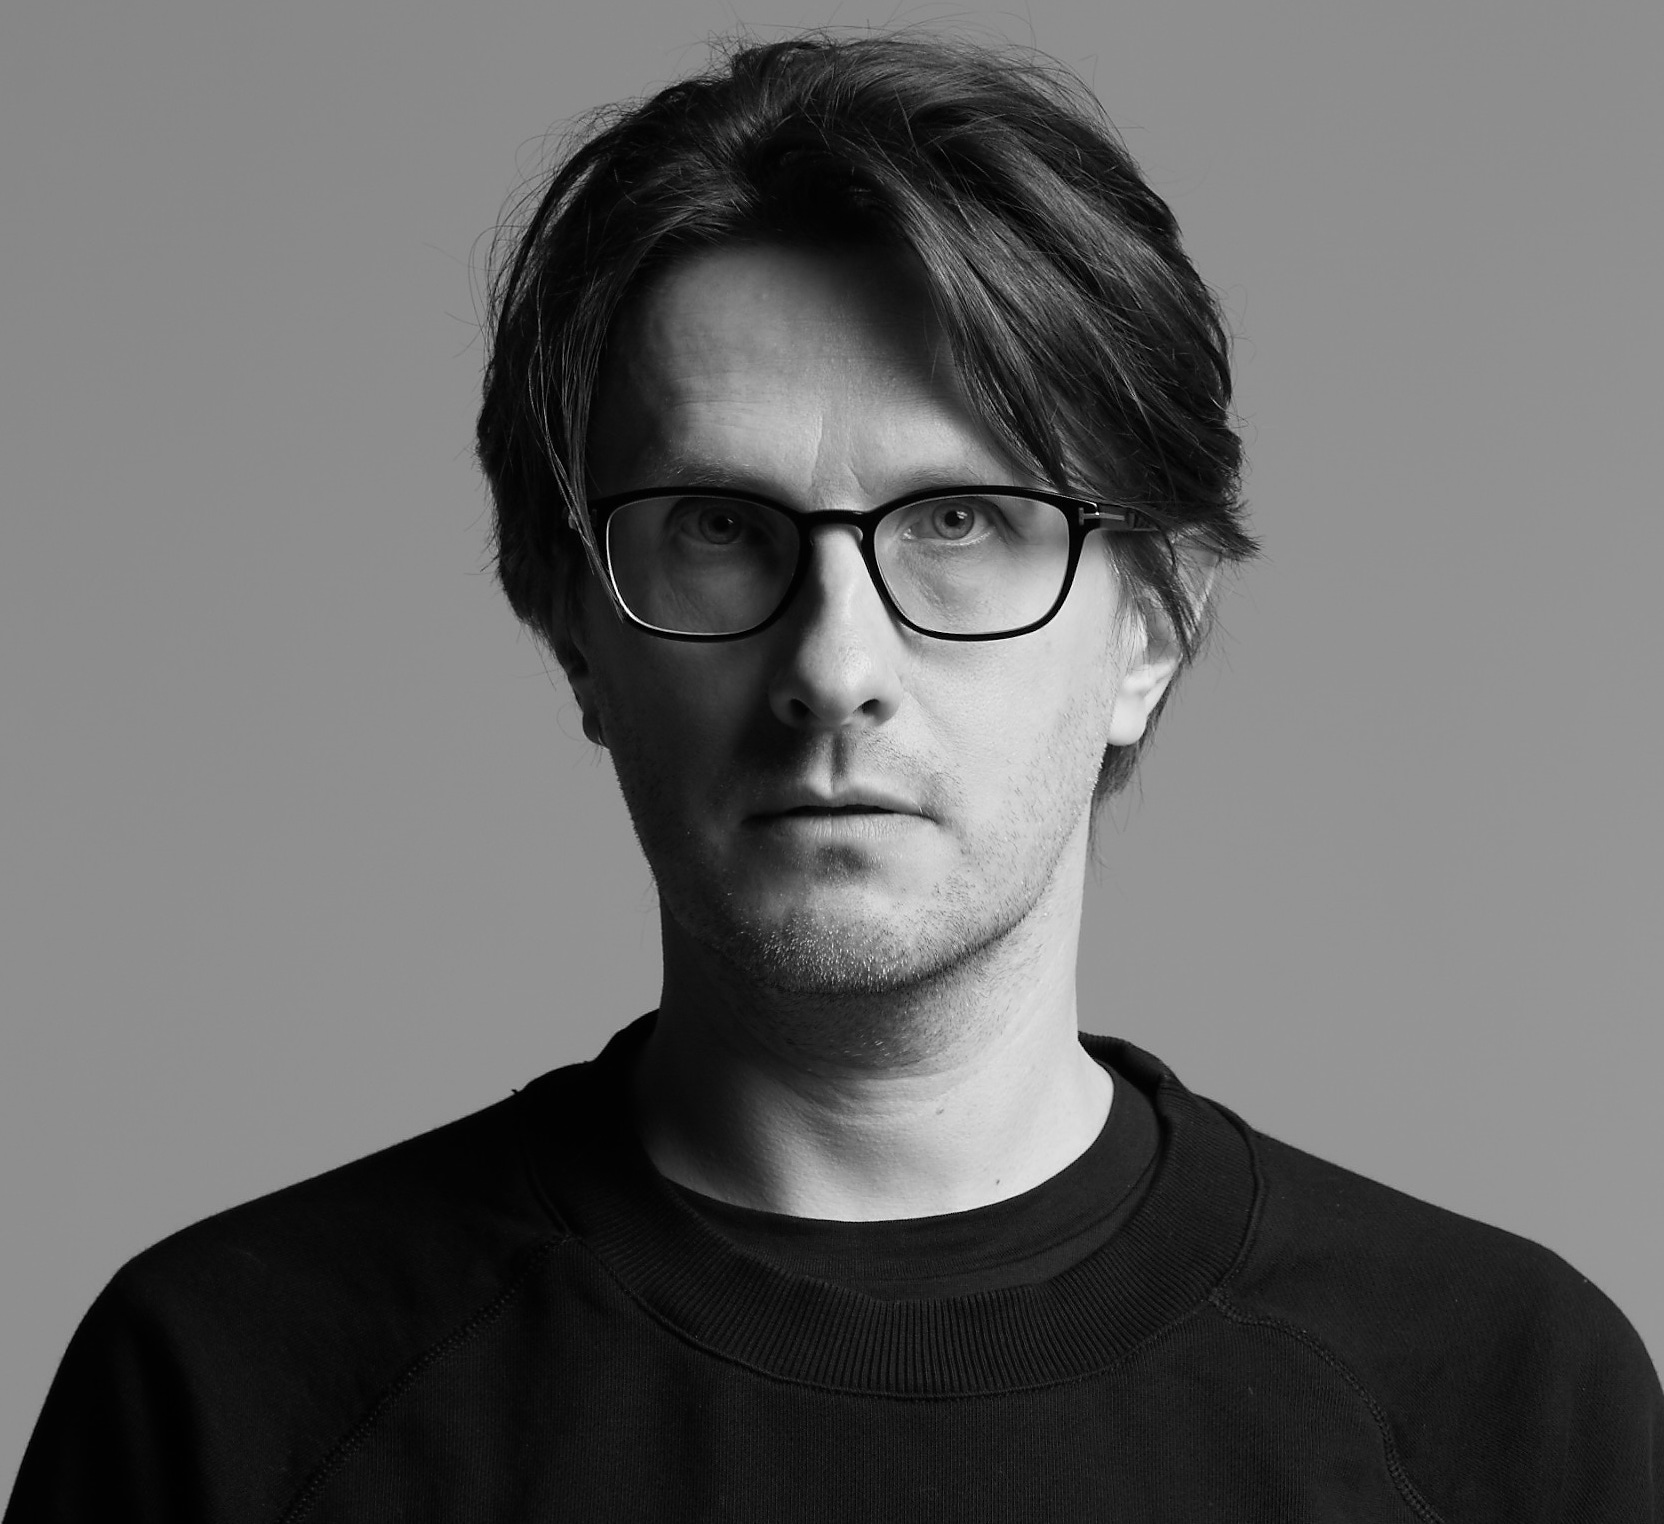 STEVEN WILSON announces new tour dates for 2021, ahead of forthcoming album 'THE FUTURE BITES'